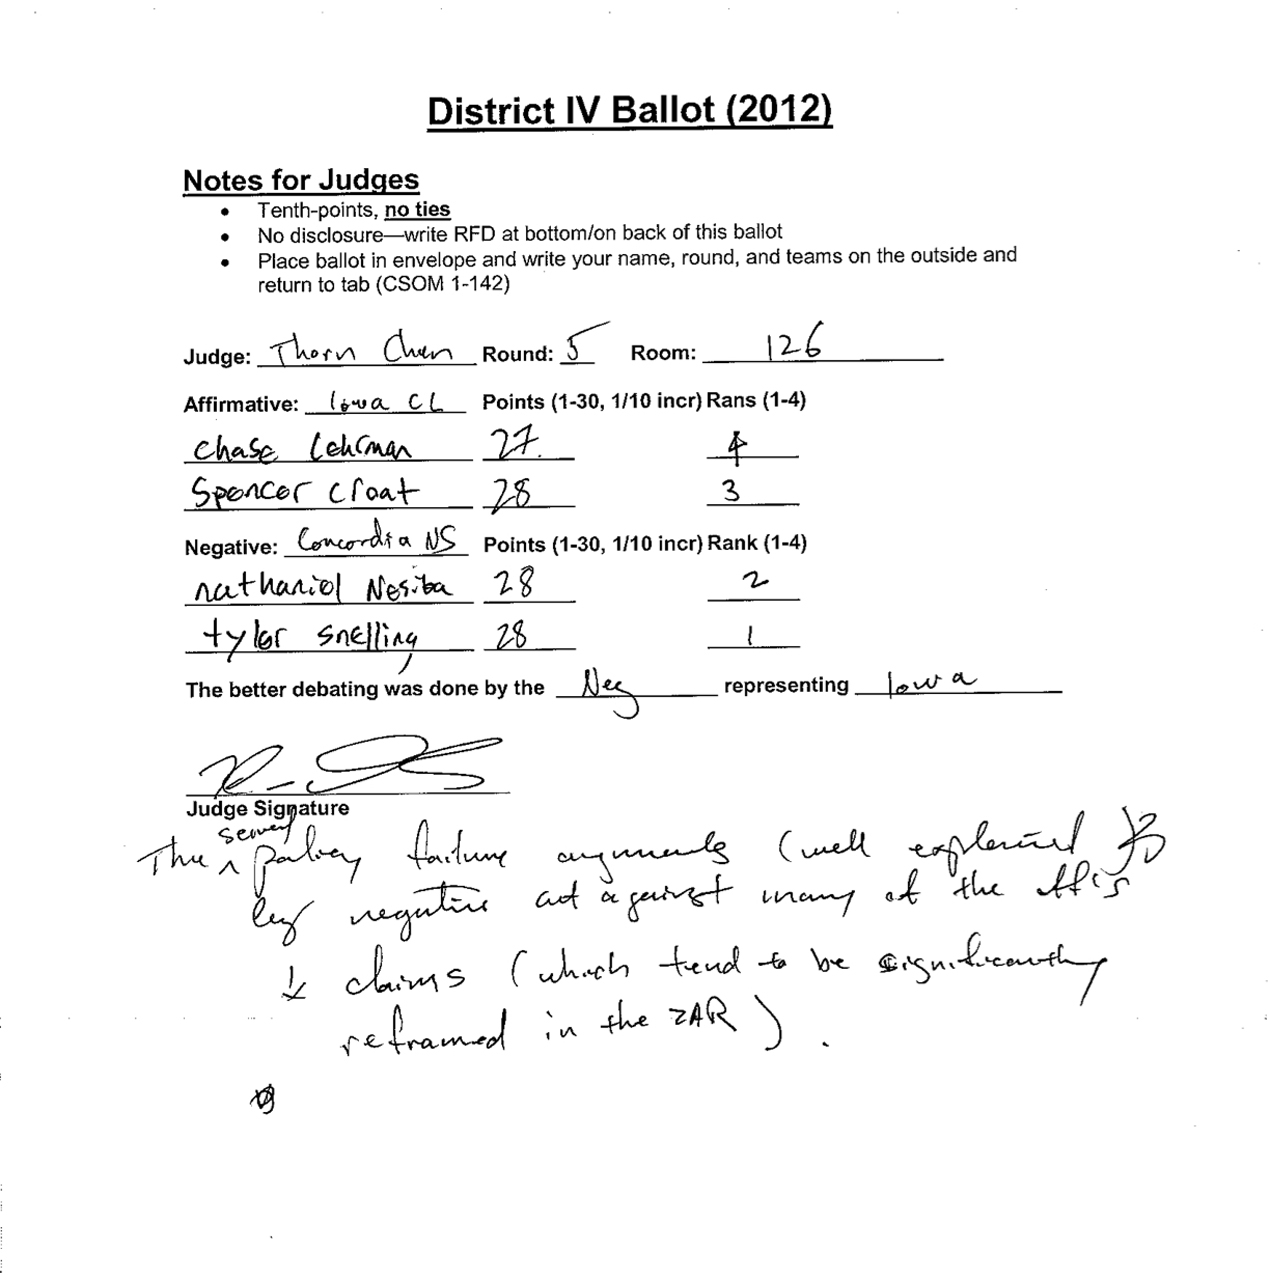 This ballot came from junior Nathaniel Nesiba and freshman Tyler Snelling's debate on the weekend of Feb. 25 and 26. Although the team scored higher than their opponents, the other school, the judge had written the other school's name as the winner.